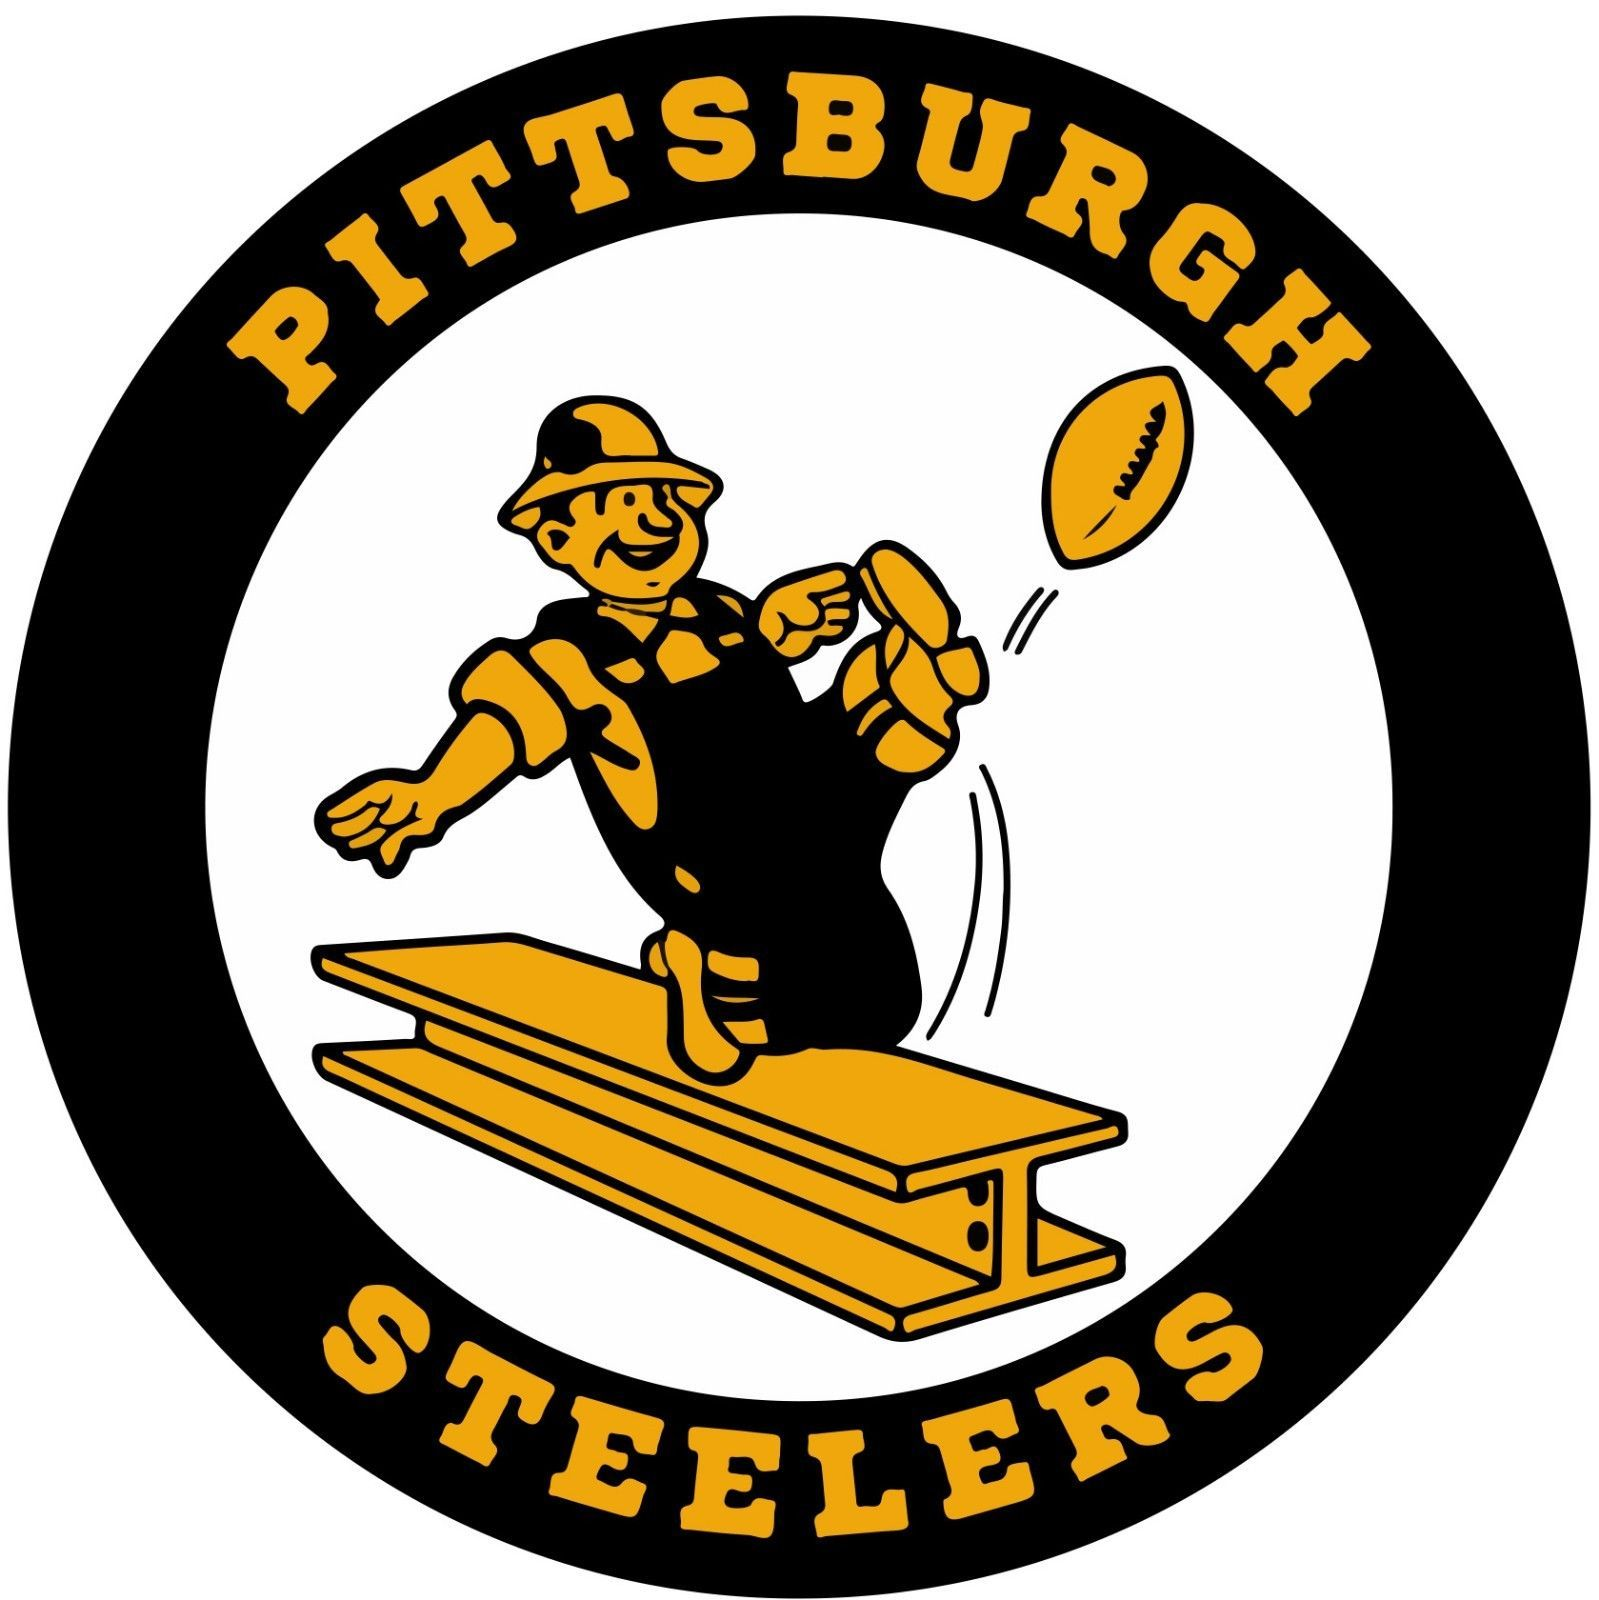 Pittsburgh Steelers Retro NFL Vinyl Decal / Sticker Sizes